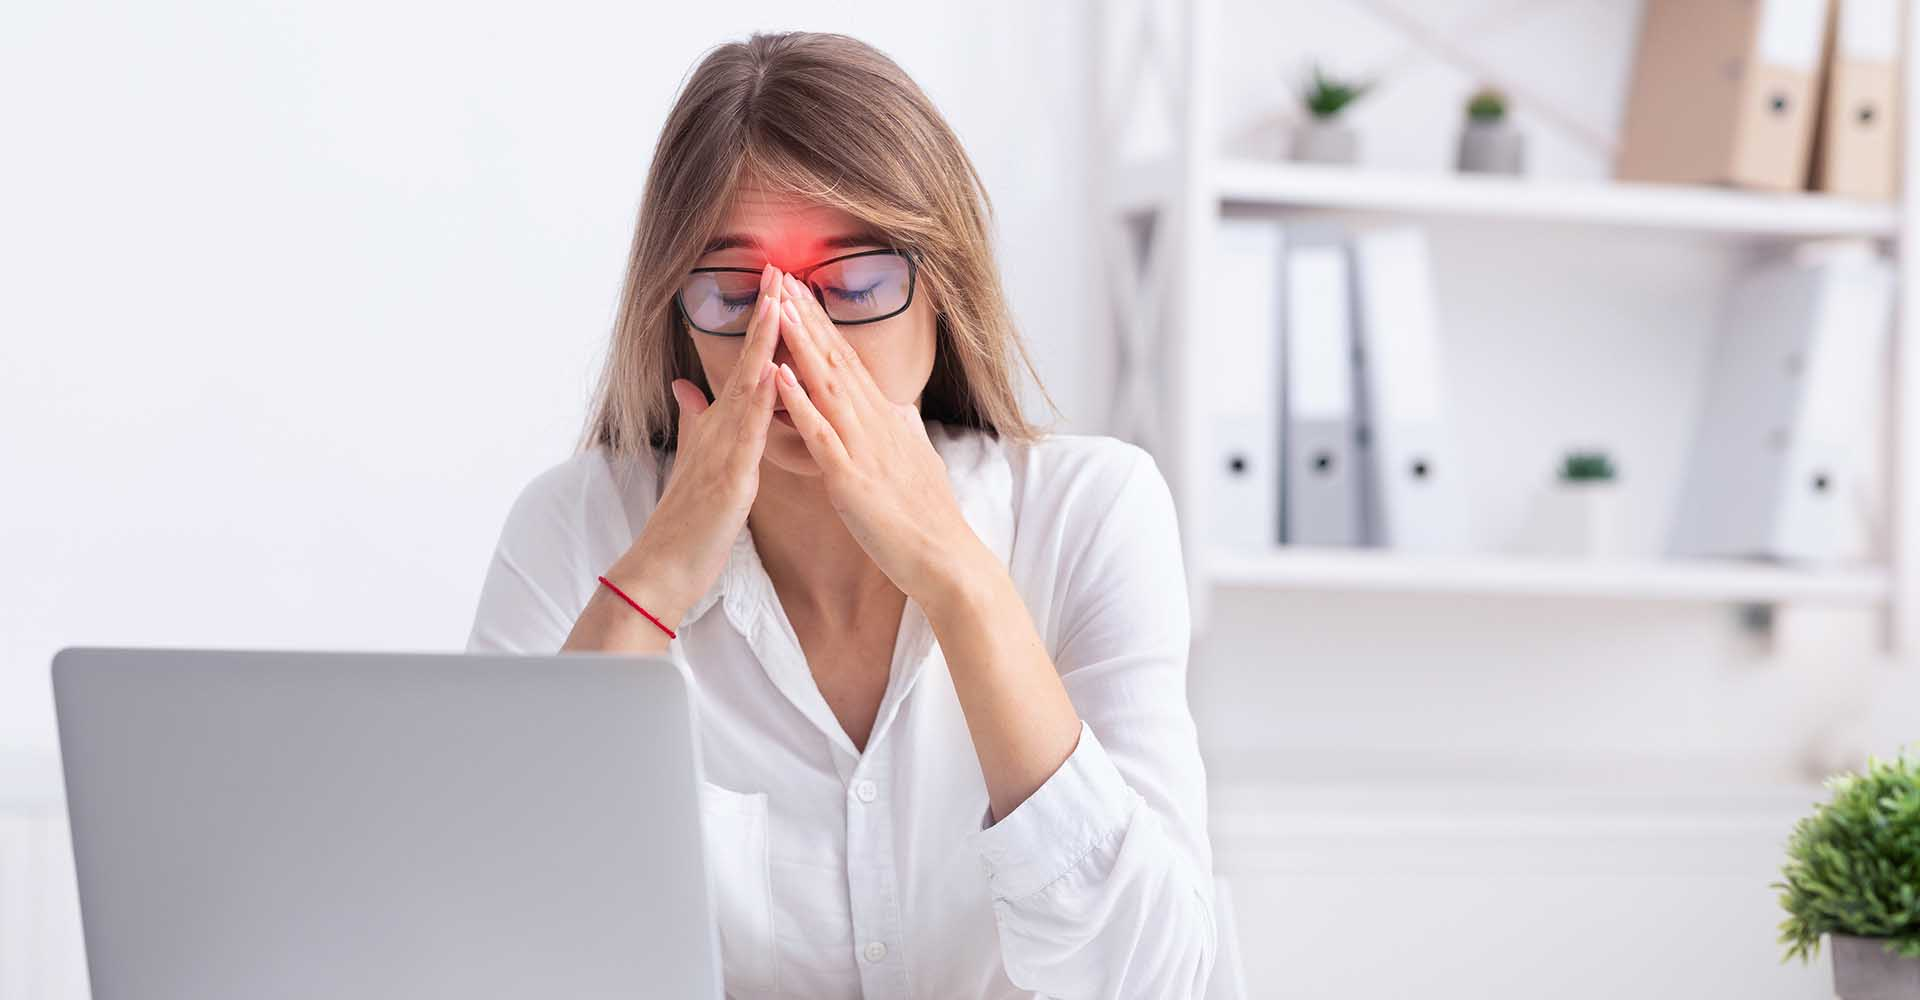 Businesswoman at work suffering srom sinus pain touching her nose and with both hands